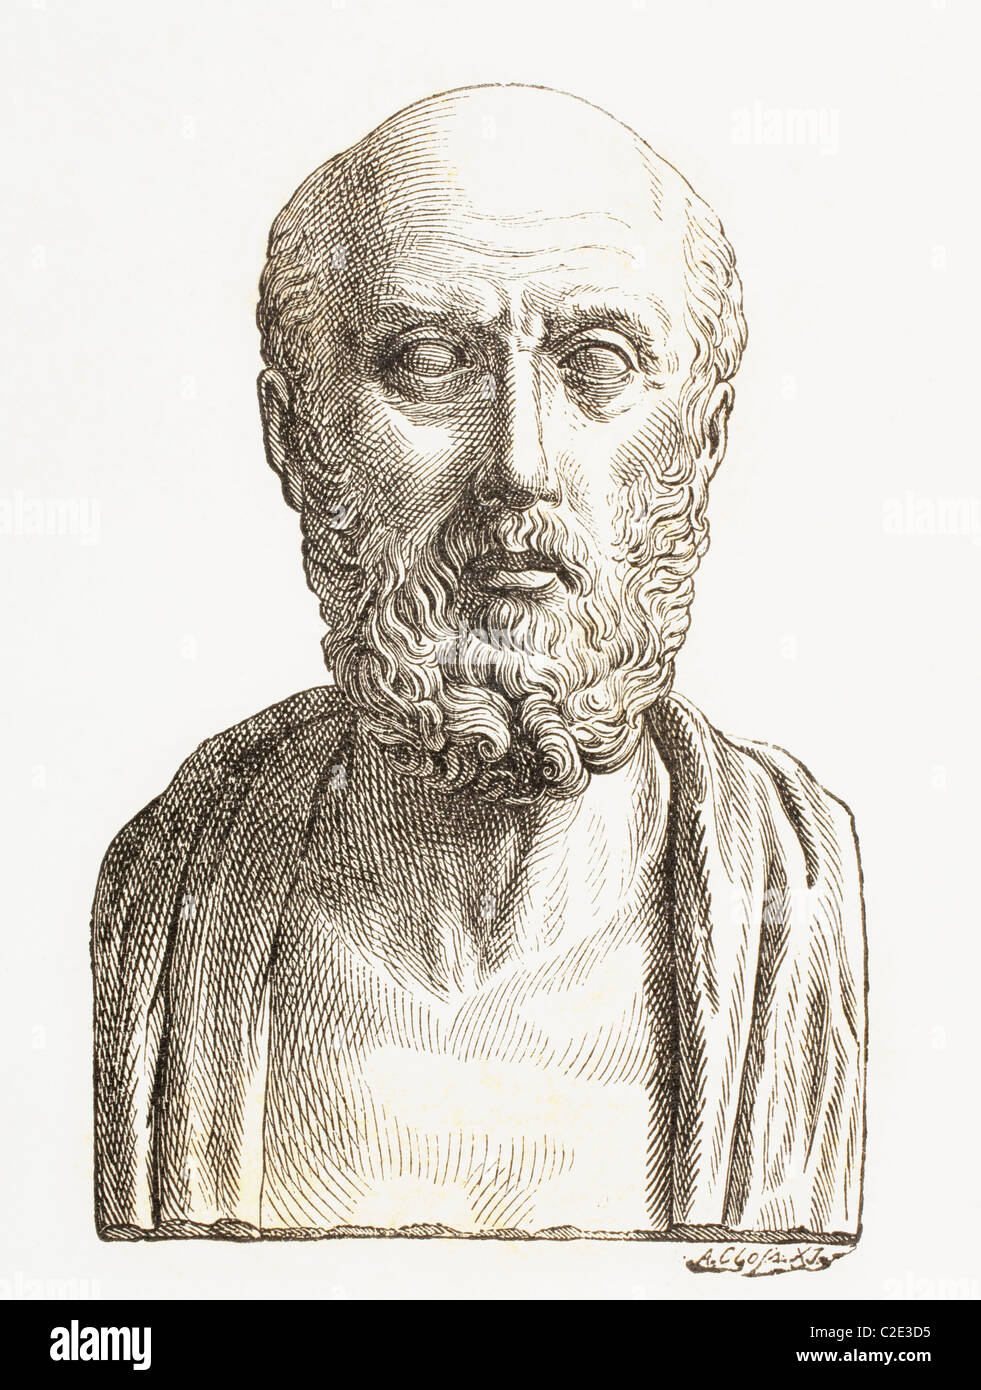 Hippocrates of Cos or Hippokrates of Kos, c. 460 BC to c. 370 BC. Ancient Greek physician of the Age of Pericles. - Stock Image